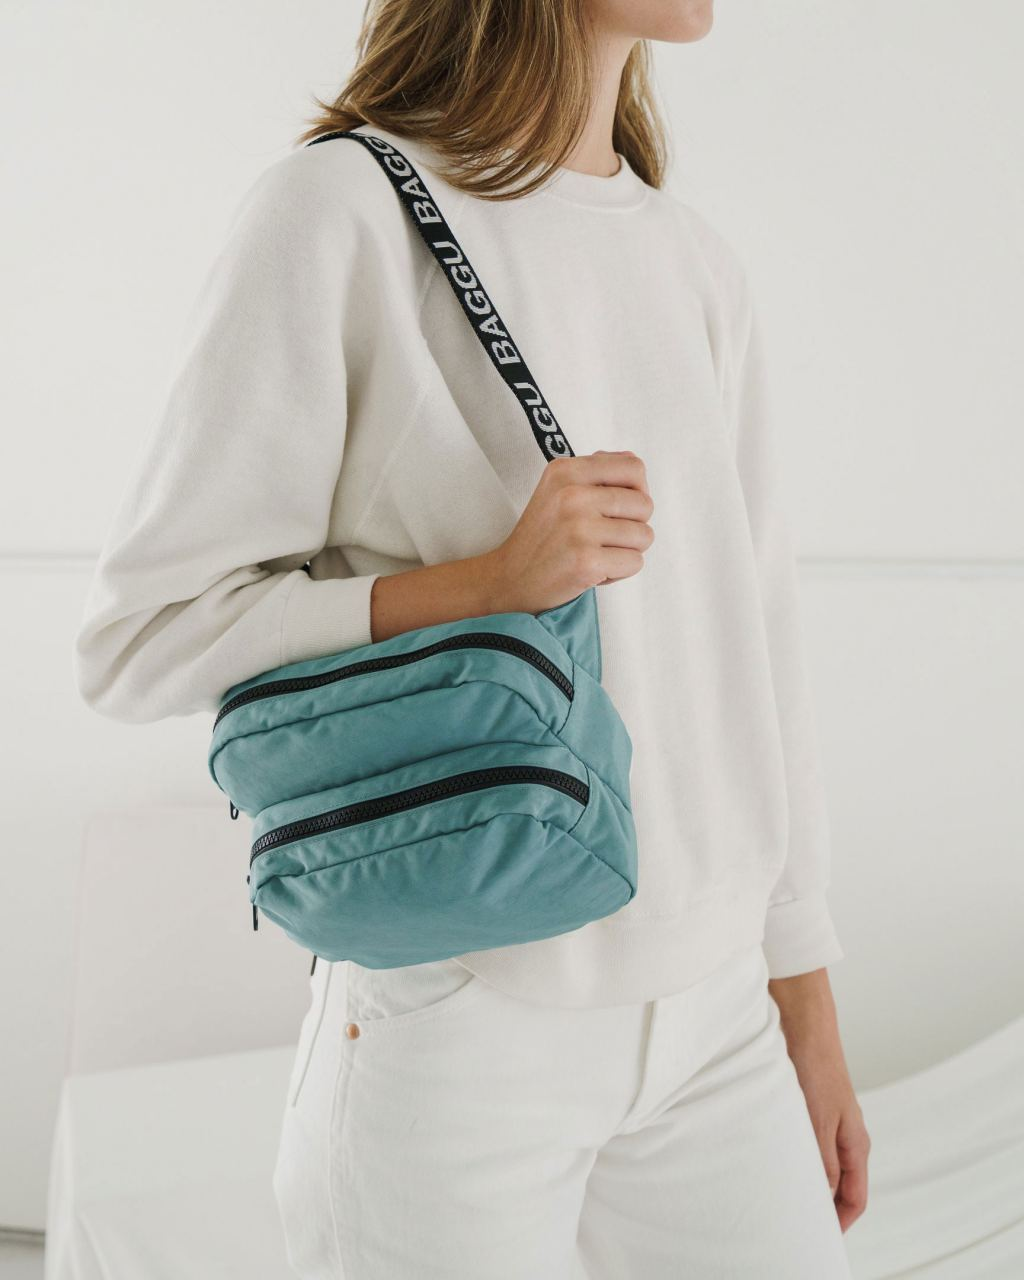 Fanny Pack Teal